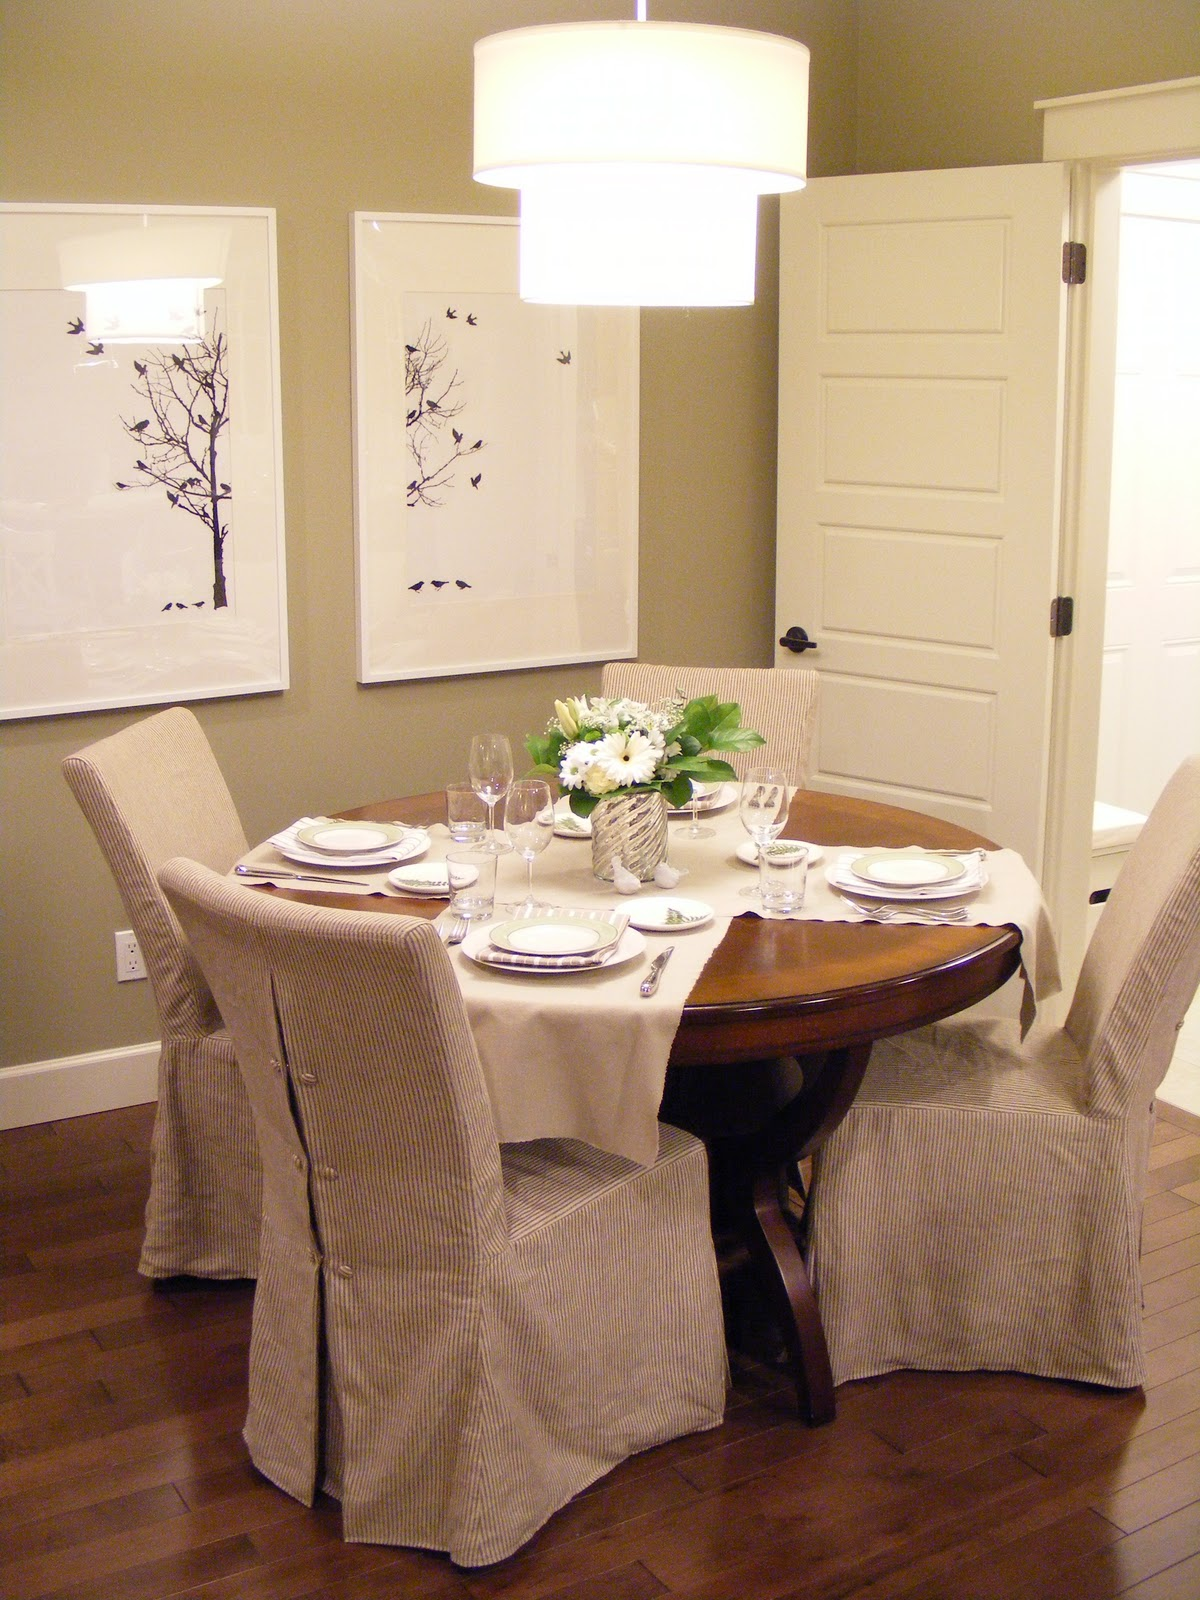 The Dining Chair Slipcovers Room Reveal